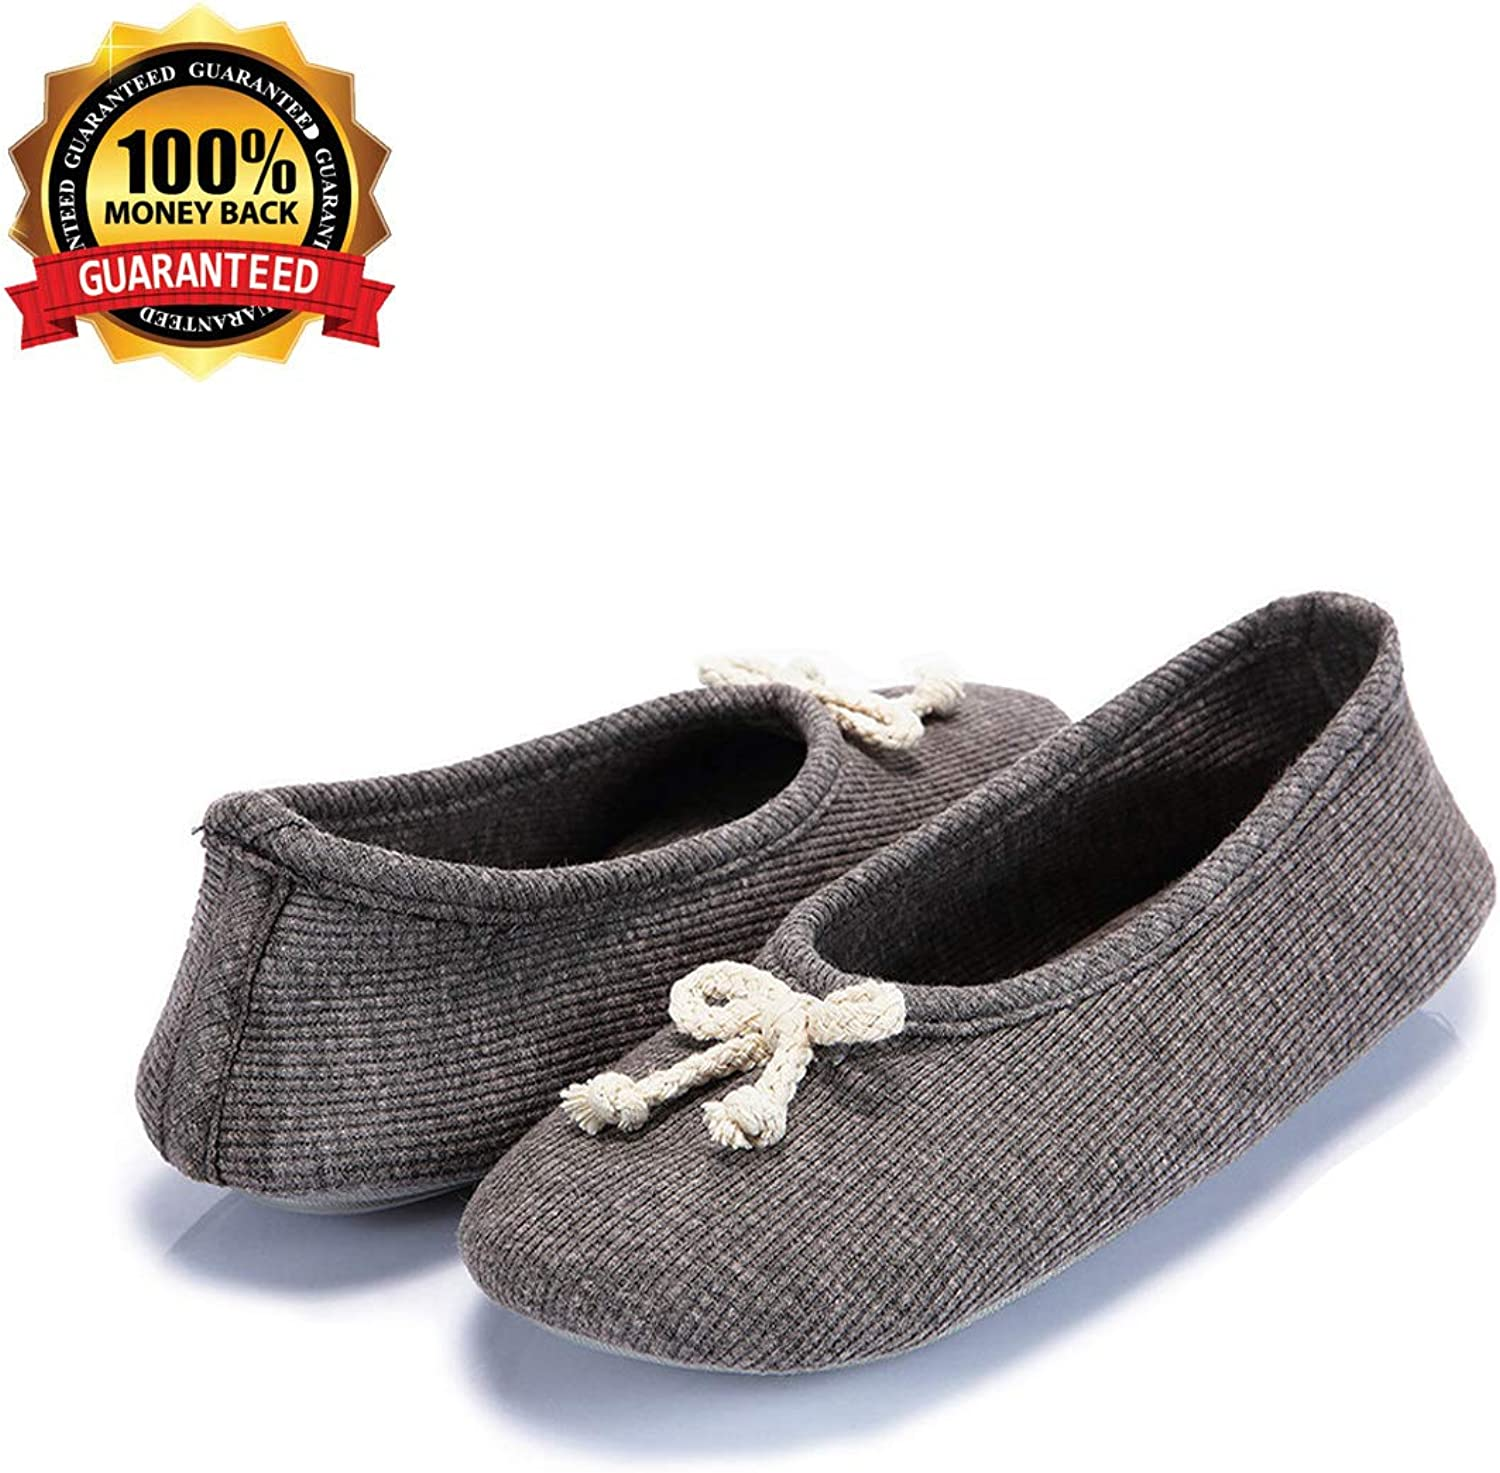 PopStore Women's Ballerina Slipper Memory Foam House shoes Comfort Knitted Soft Sole Indoor shoes